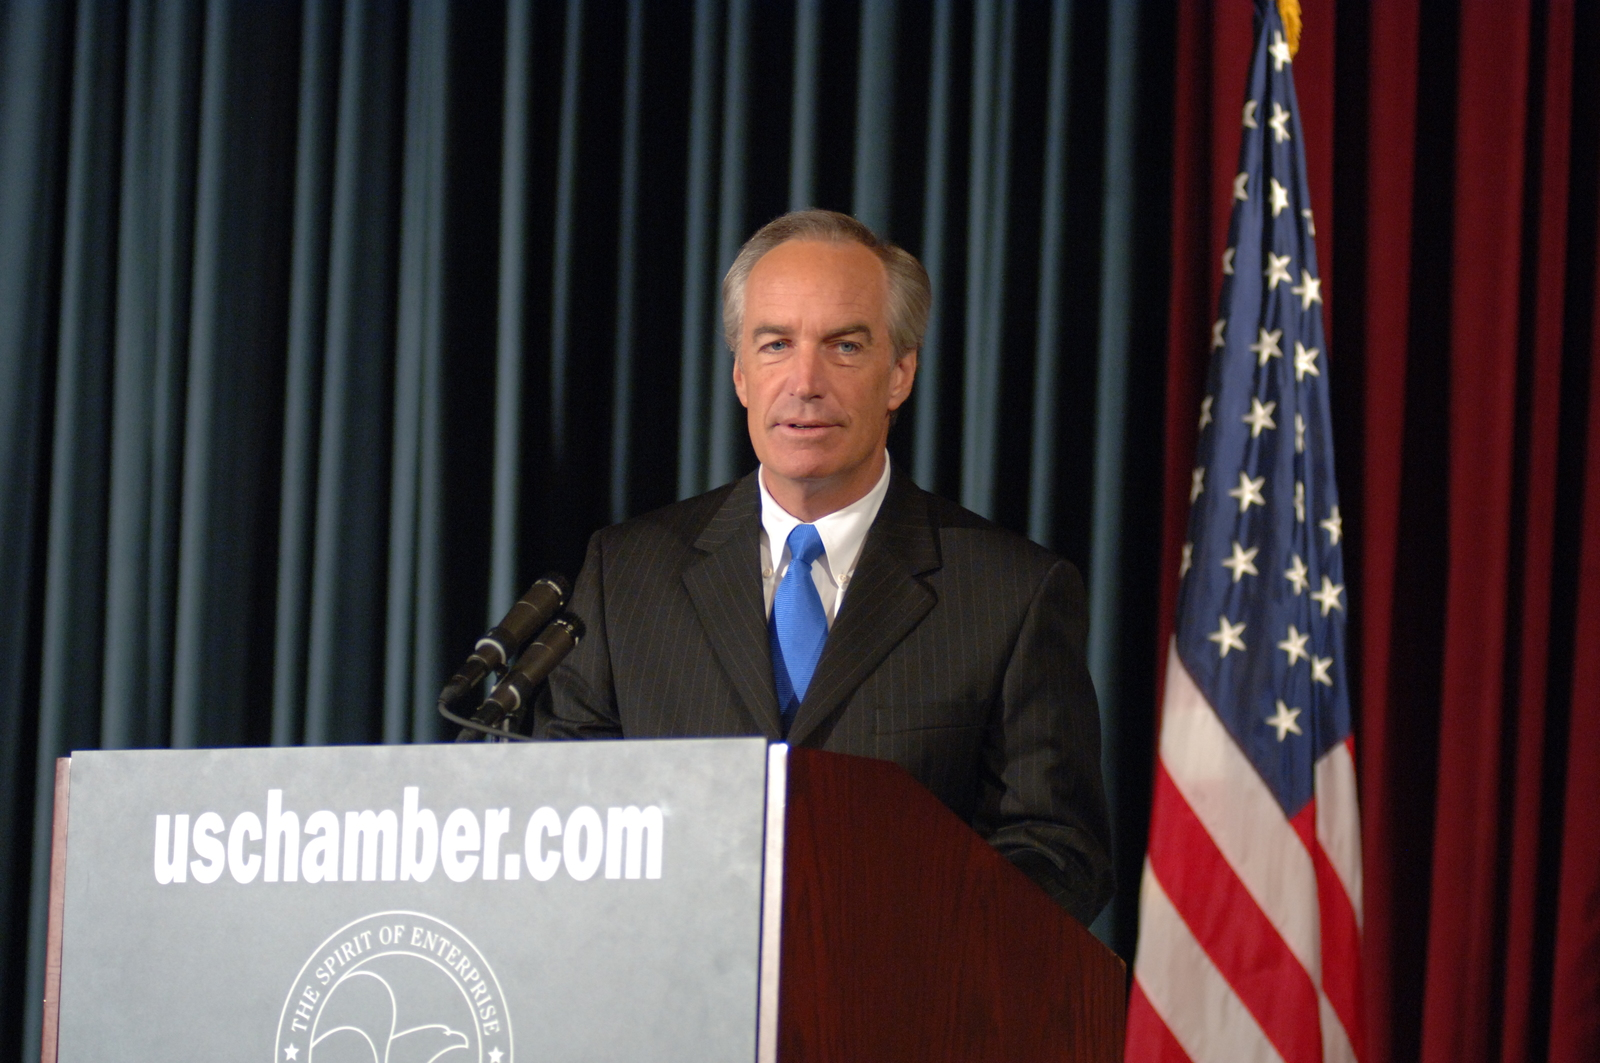 "[Assignment: 48-DPA-SOI_K_CoC_7-19-06] Secretary Dirk Kempthorne at the U.S. Chamber of Commerce's [Hall of Flags], Washington, D.C., [to deliver address as part of the Chamber-sponsored national energy summit, ""An Open National Discussion of U.S. Energy Policy""] [48-DPA-SOI_K_CoC__7-19-06_DOI_8964.JPG]"